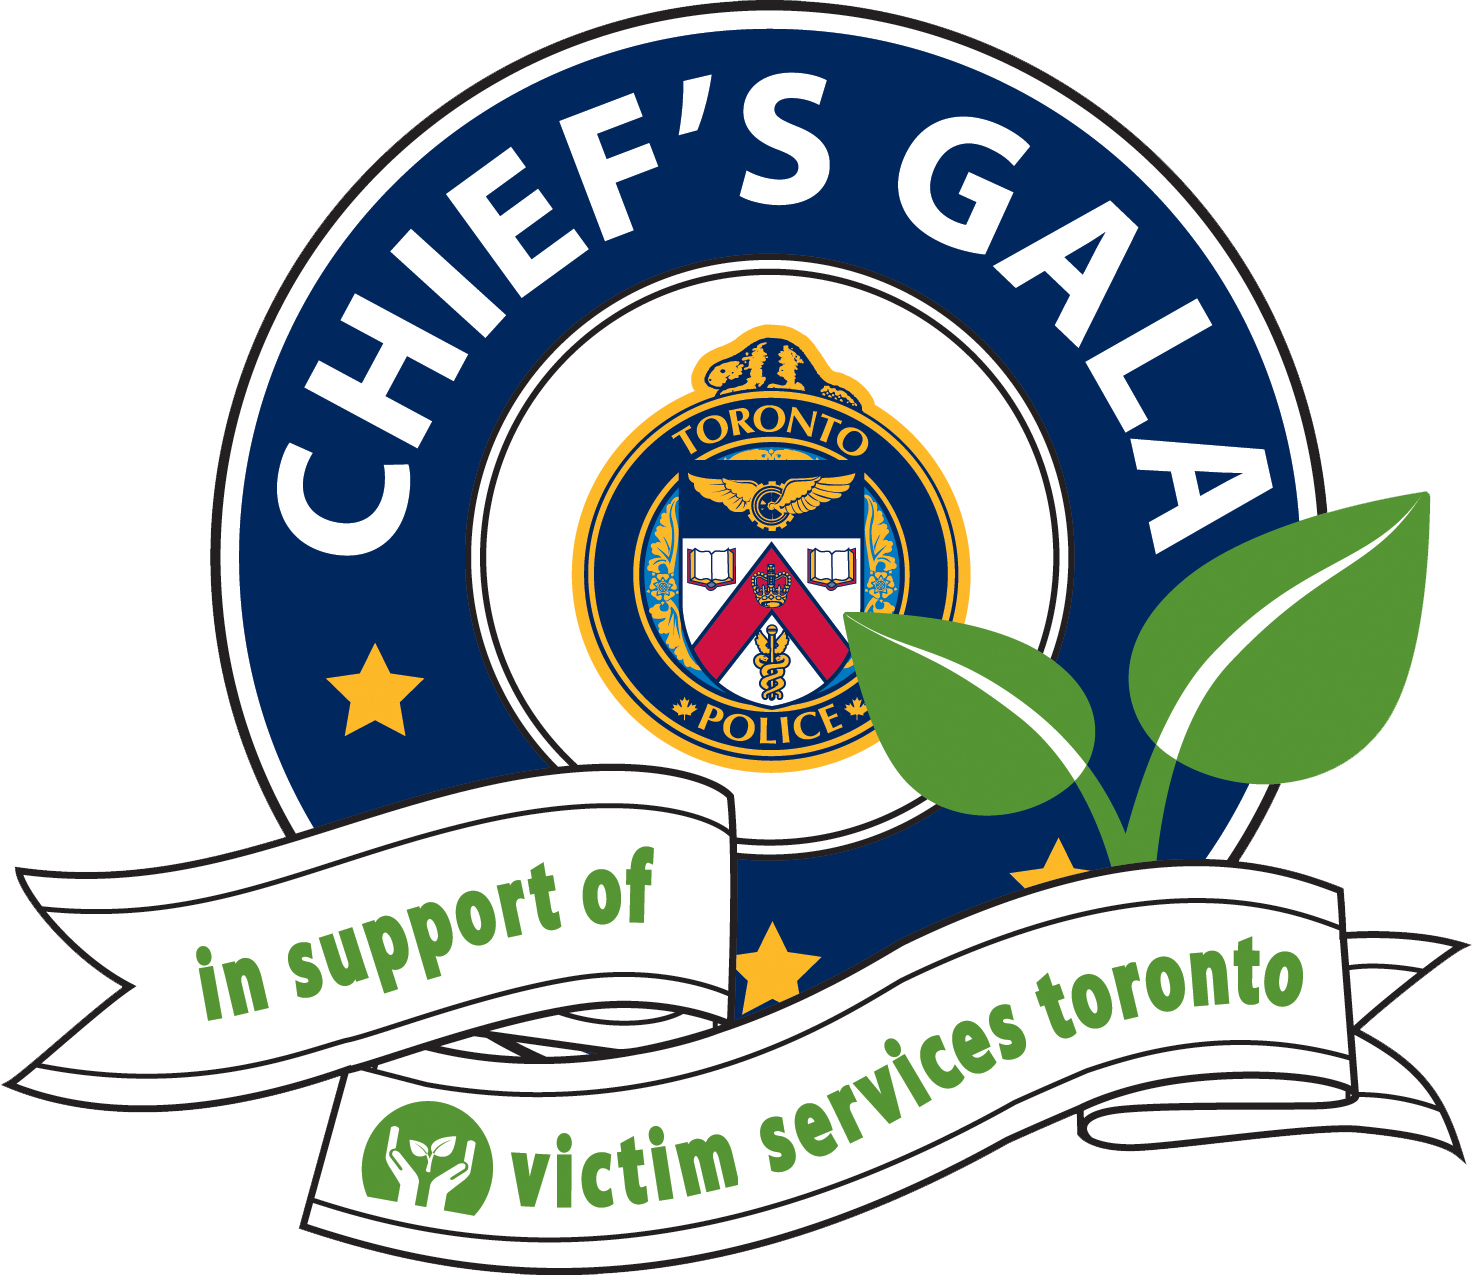 Chief's Gala Logo.png